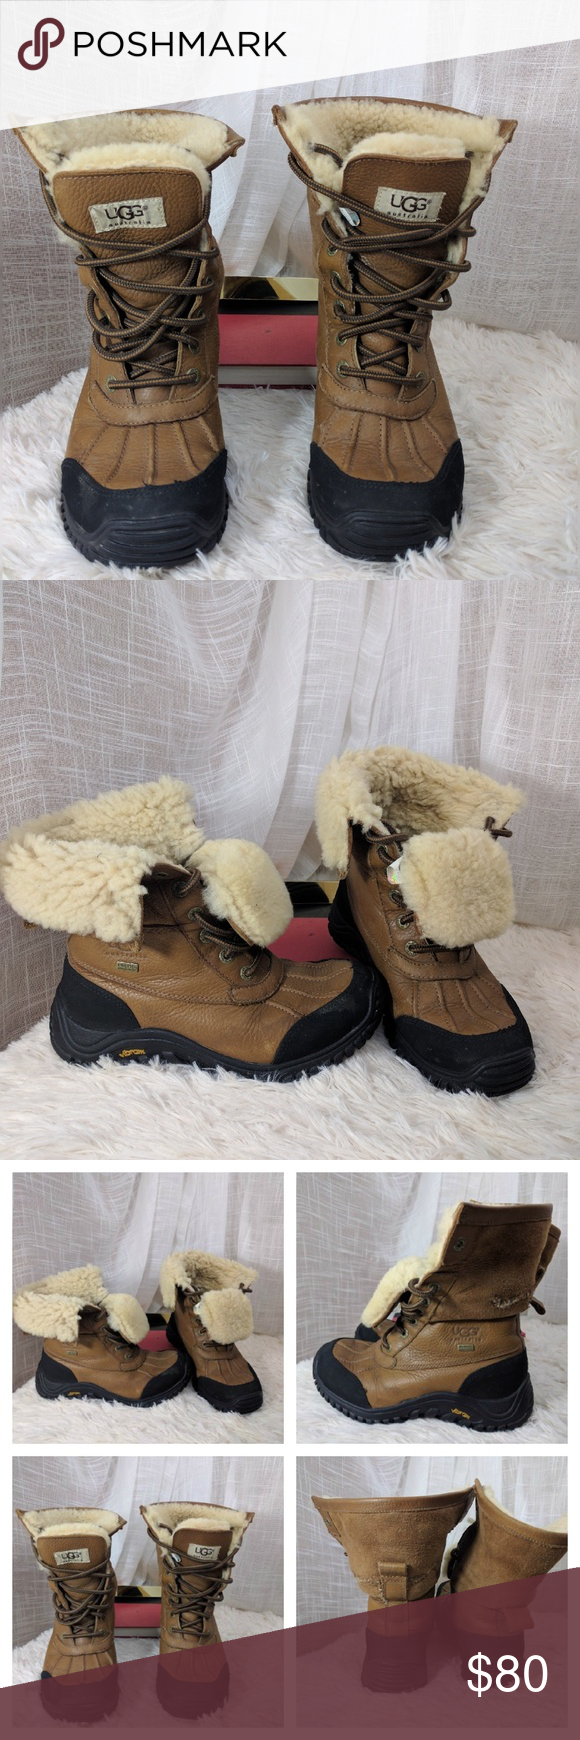 84002d9610f UGG Adirondack Boot II Women's Snow Boots in Otter These had a tear ...